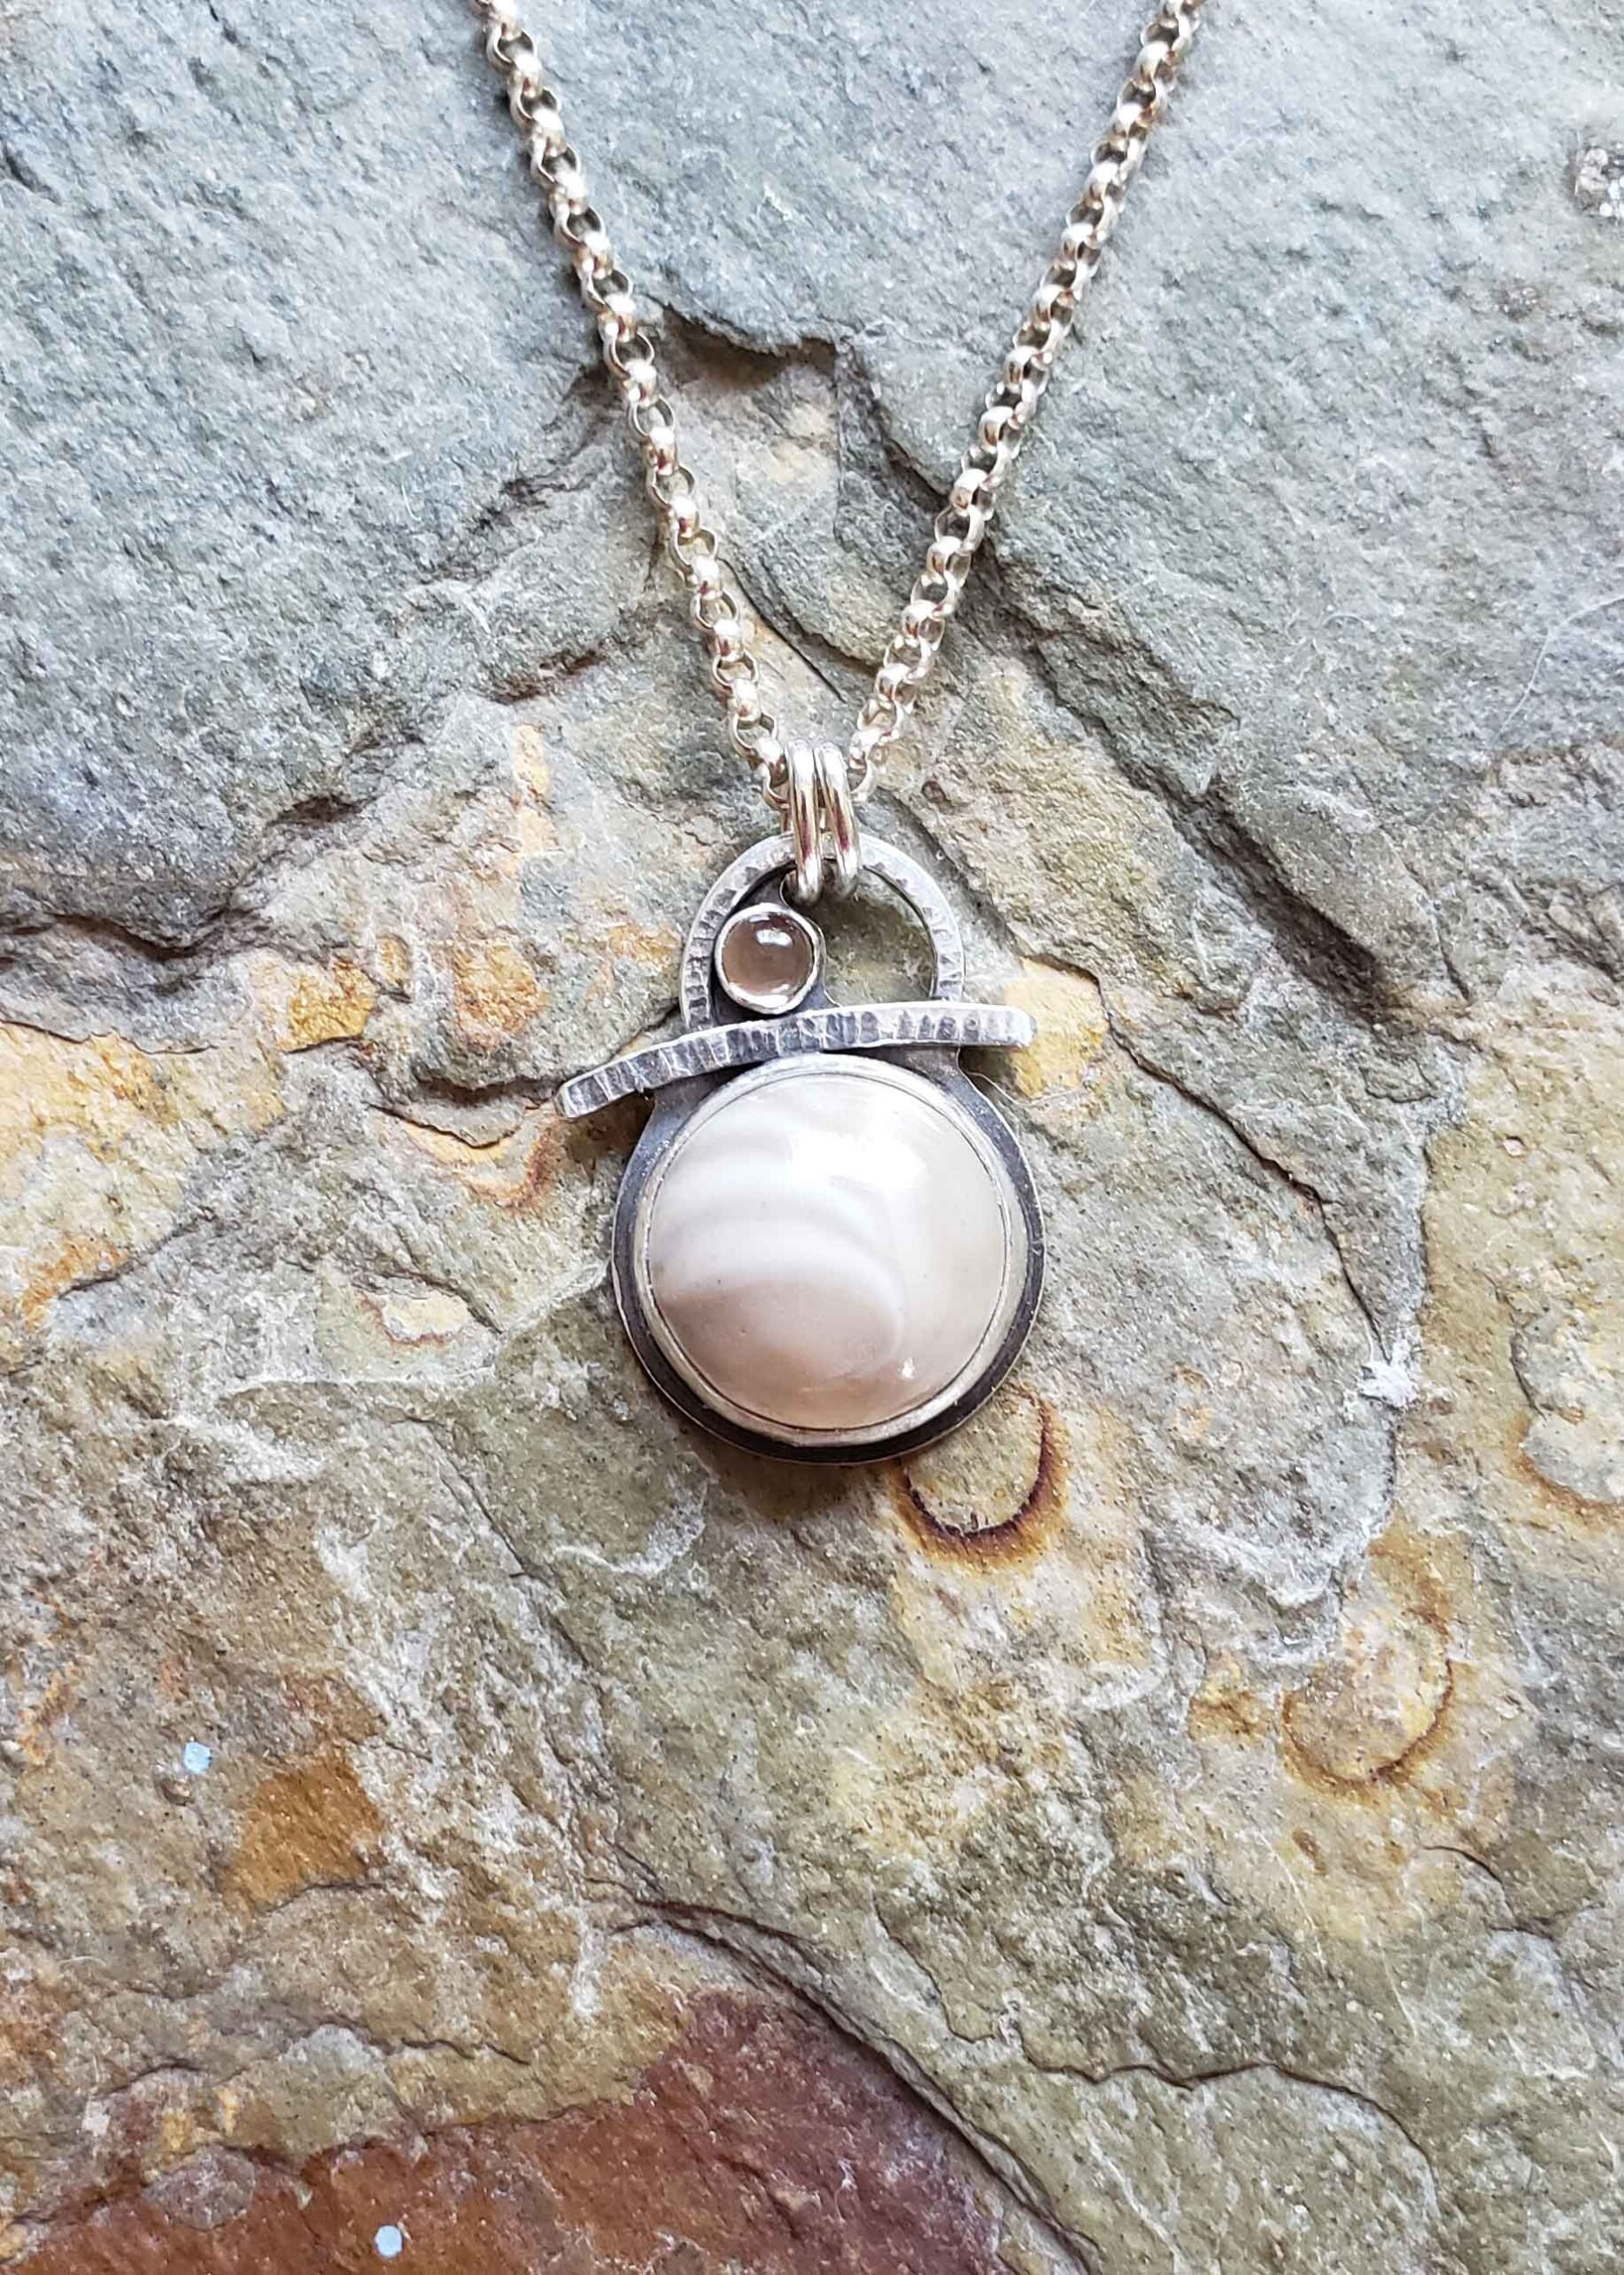 Petite silver pendant in creams and browns by Dona Miller.